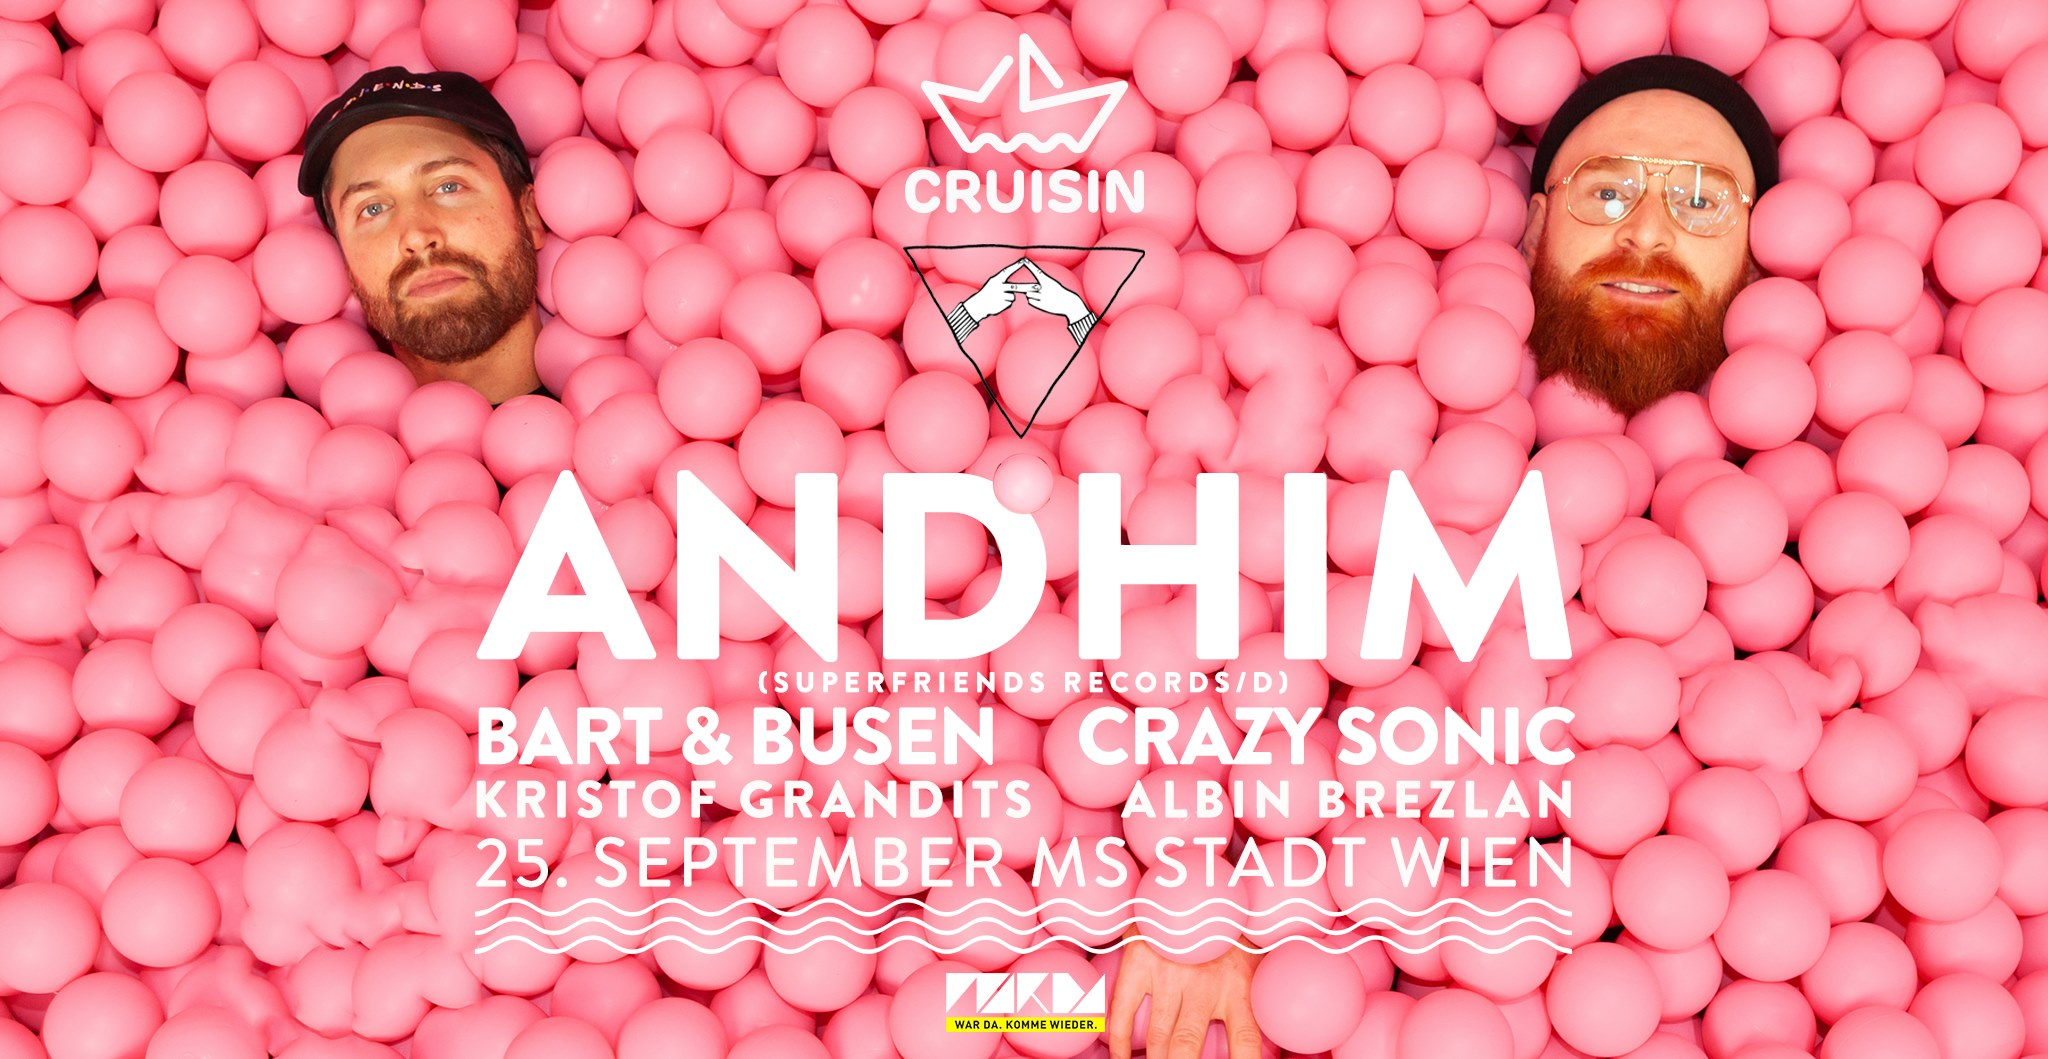 Events Wien: Cruisin Boat Party w/ Andhim